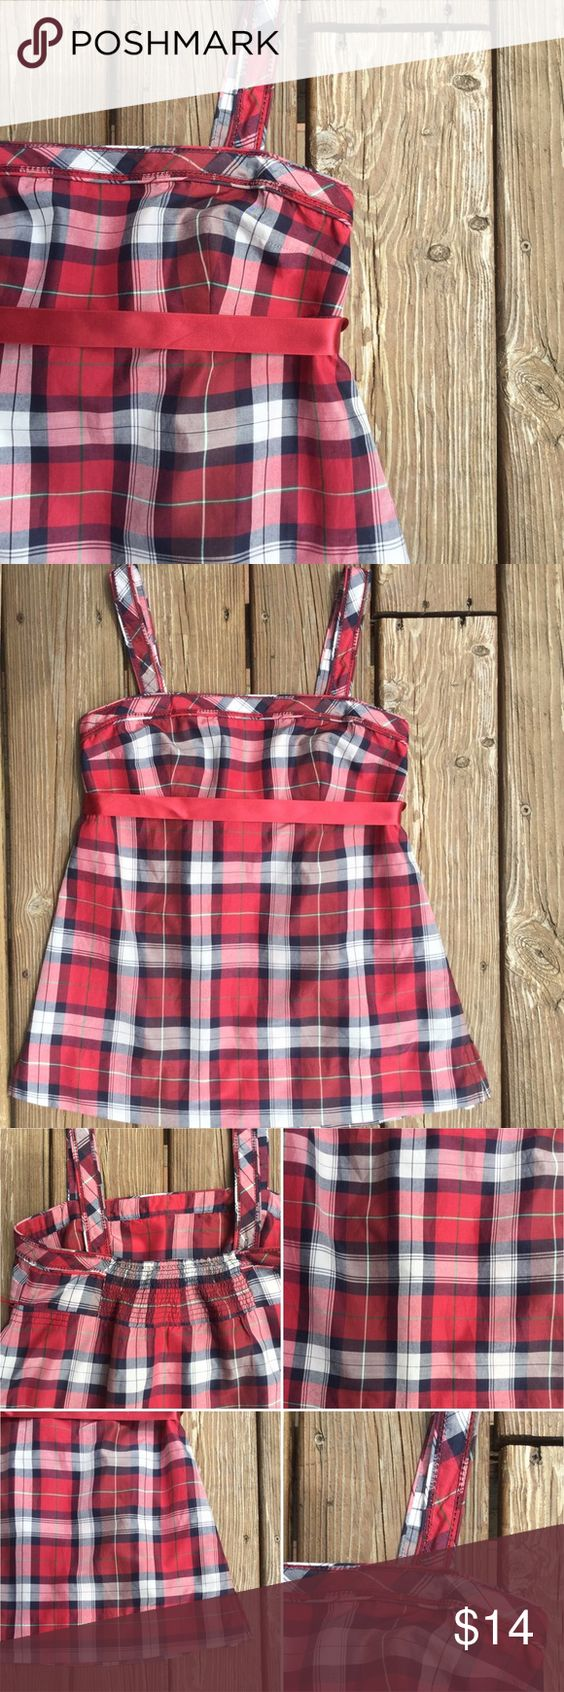 """AMERICAN EAGLE Plaid Empire Tank w/Ribben Tie Cool and light as air 61% Cotton/39% Silk adjustable 1"""" strap, empire waist blouse. Trendy red, white and navy plaid. Smocked gathering in the back. Side vents at hem. App. measurements: Waist - 15.5"""" from armpit to armpit; Length - 20"""" drop from top band to hem measuring down the front, (not including straps). American Eagle Outfitters Tops Tank Tops"""